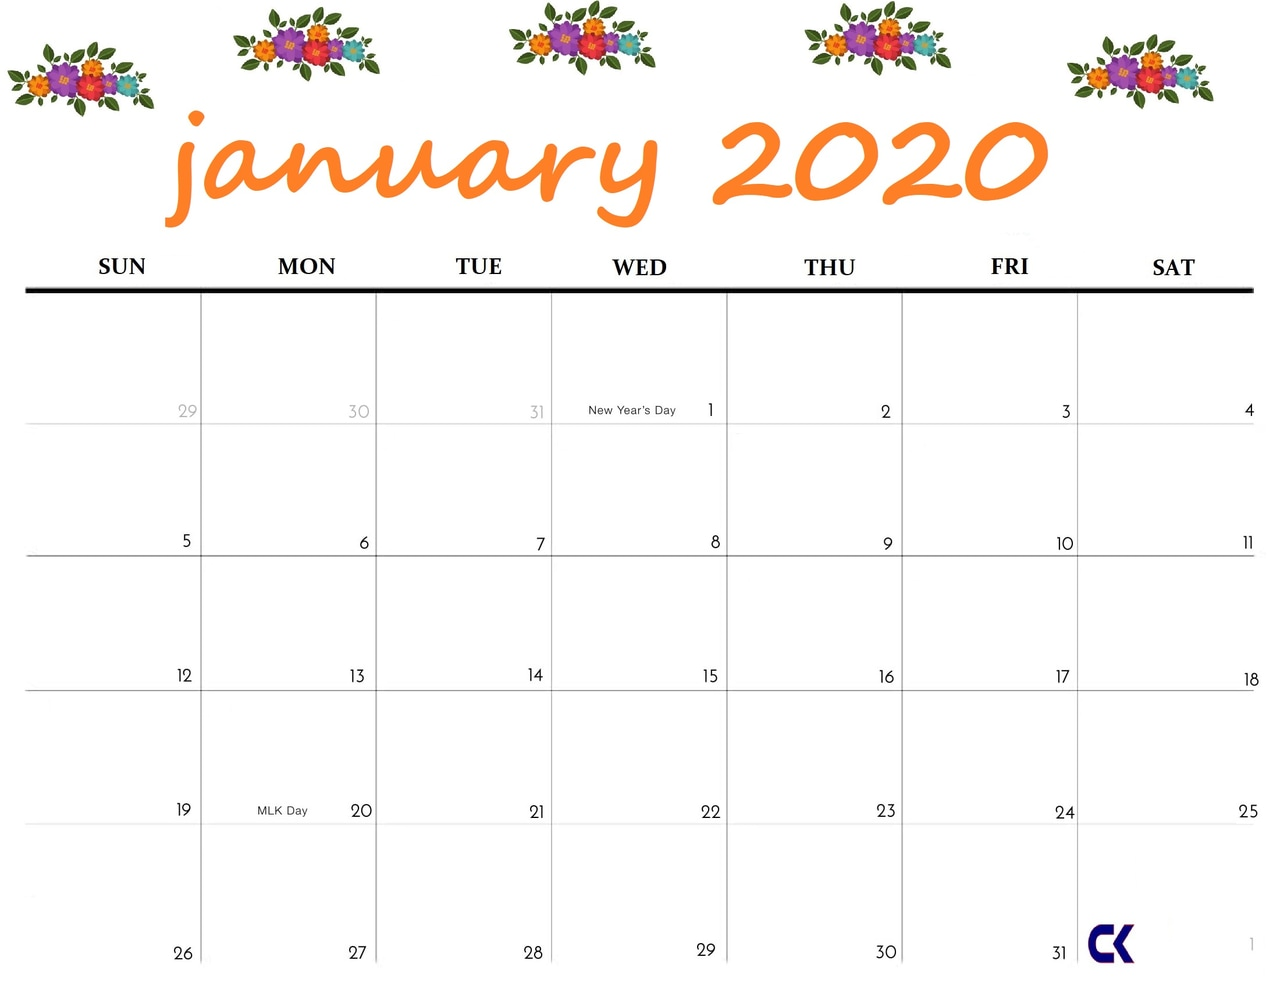 Best Cute January 2020 Calendar Floral Wallpaper For Desktop 1280x989